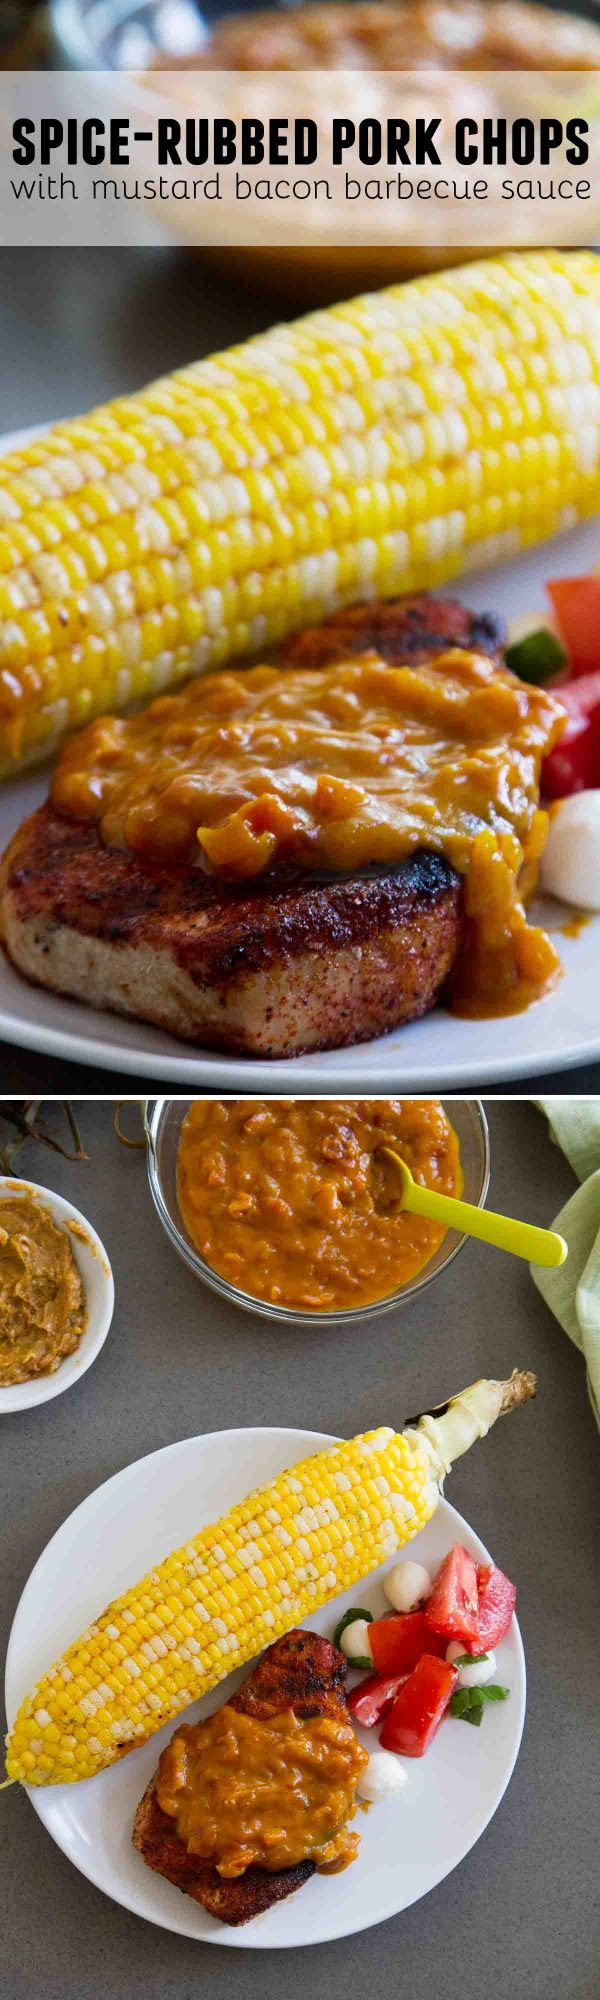 These Spice-Rubbed Pork Chops with Mustard Bacon Barbecue Sauce are pork chops with a punch! Boneless pork chops are enhanced with a simple rub, then served with an easy homemade barbecue sauce.